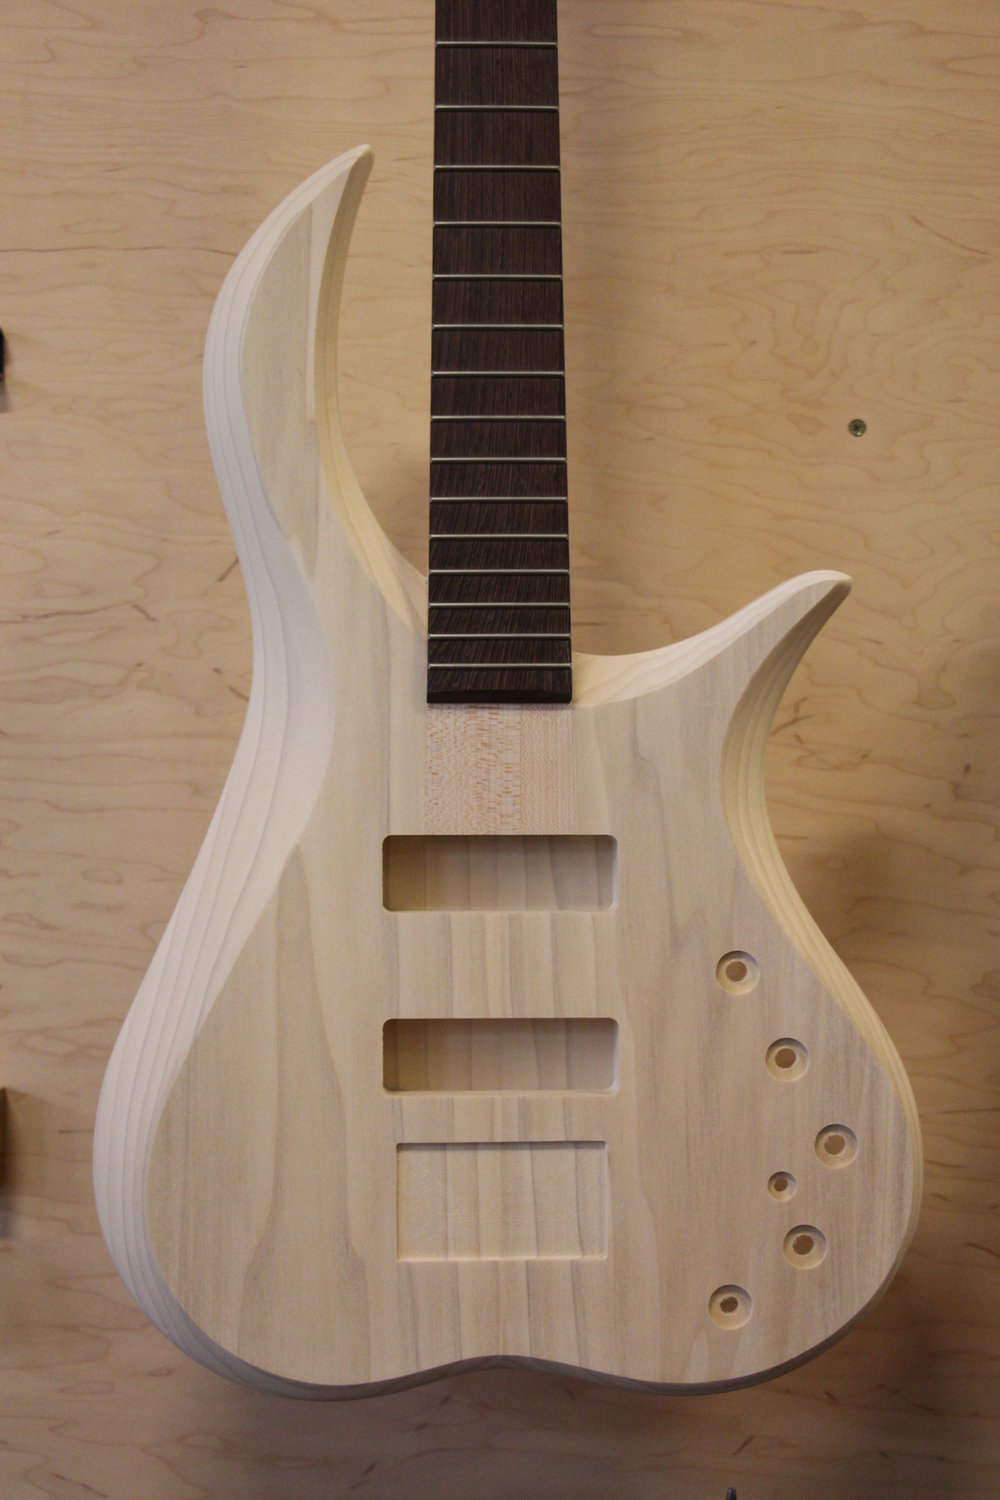 - Poplar 4 string with 3 piece maple neck and wenge fretboard